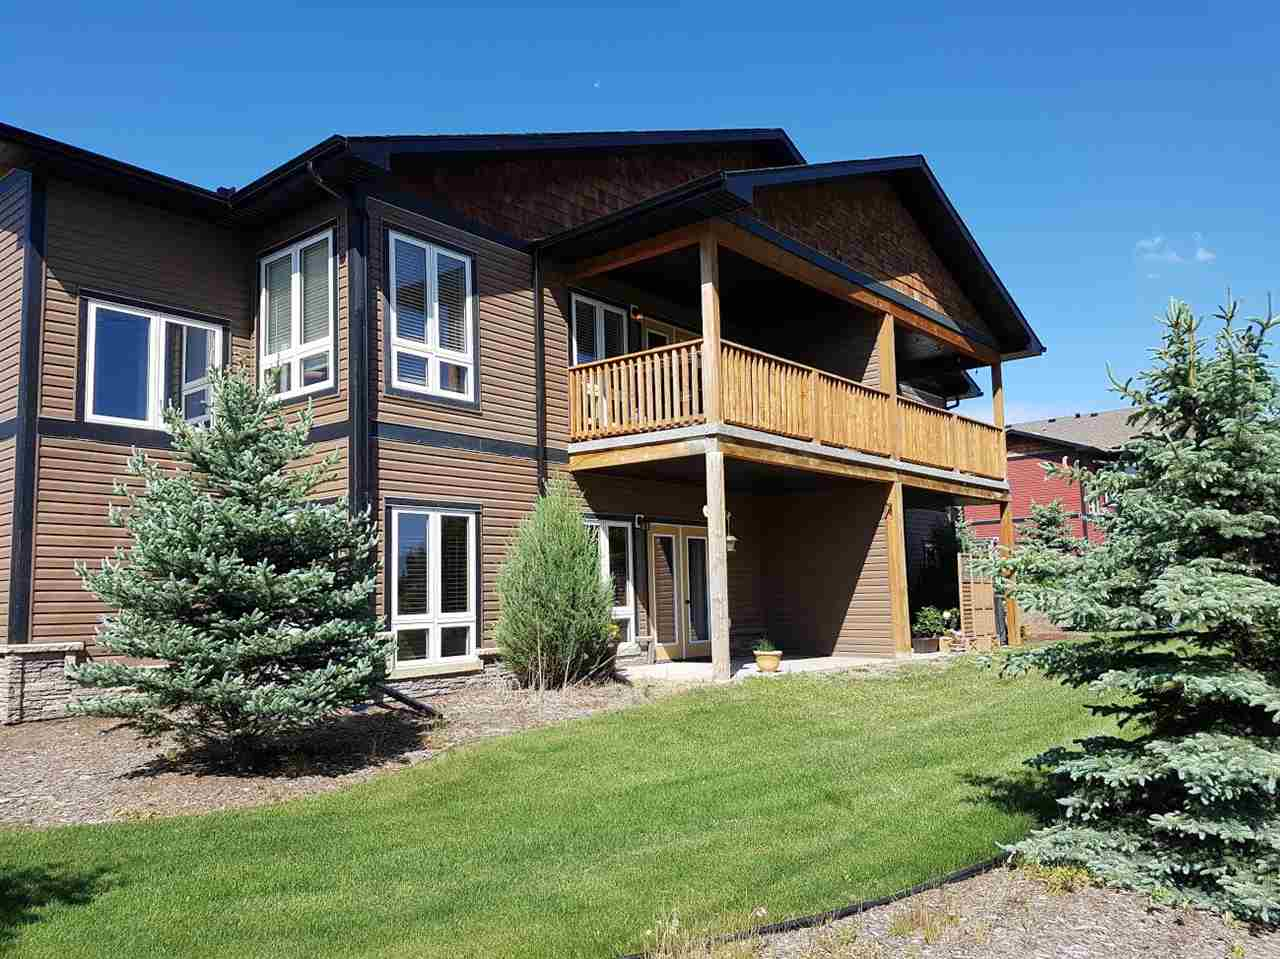 Main Photo: 801 GRAYBRIAR Green: Stony Plain Townhouse for sale : MLS(r) # E4068982